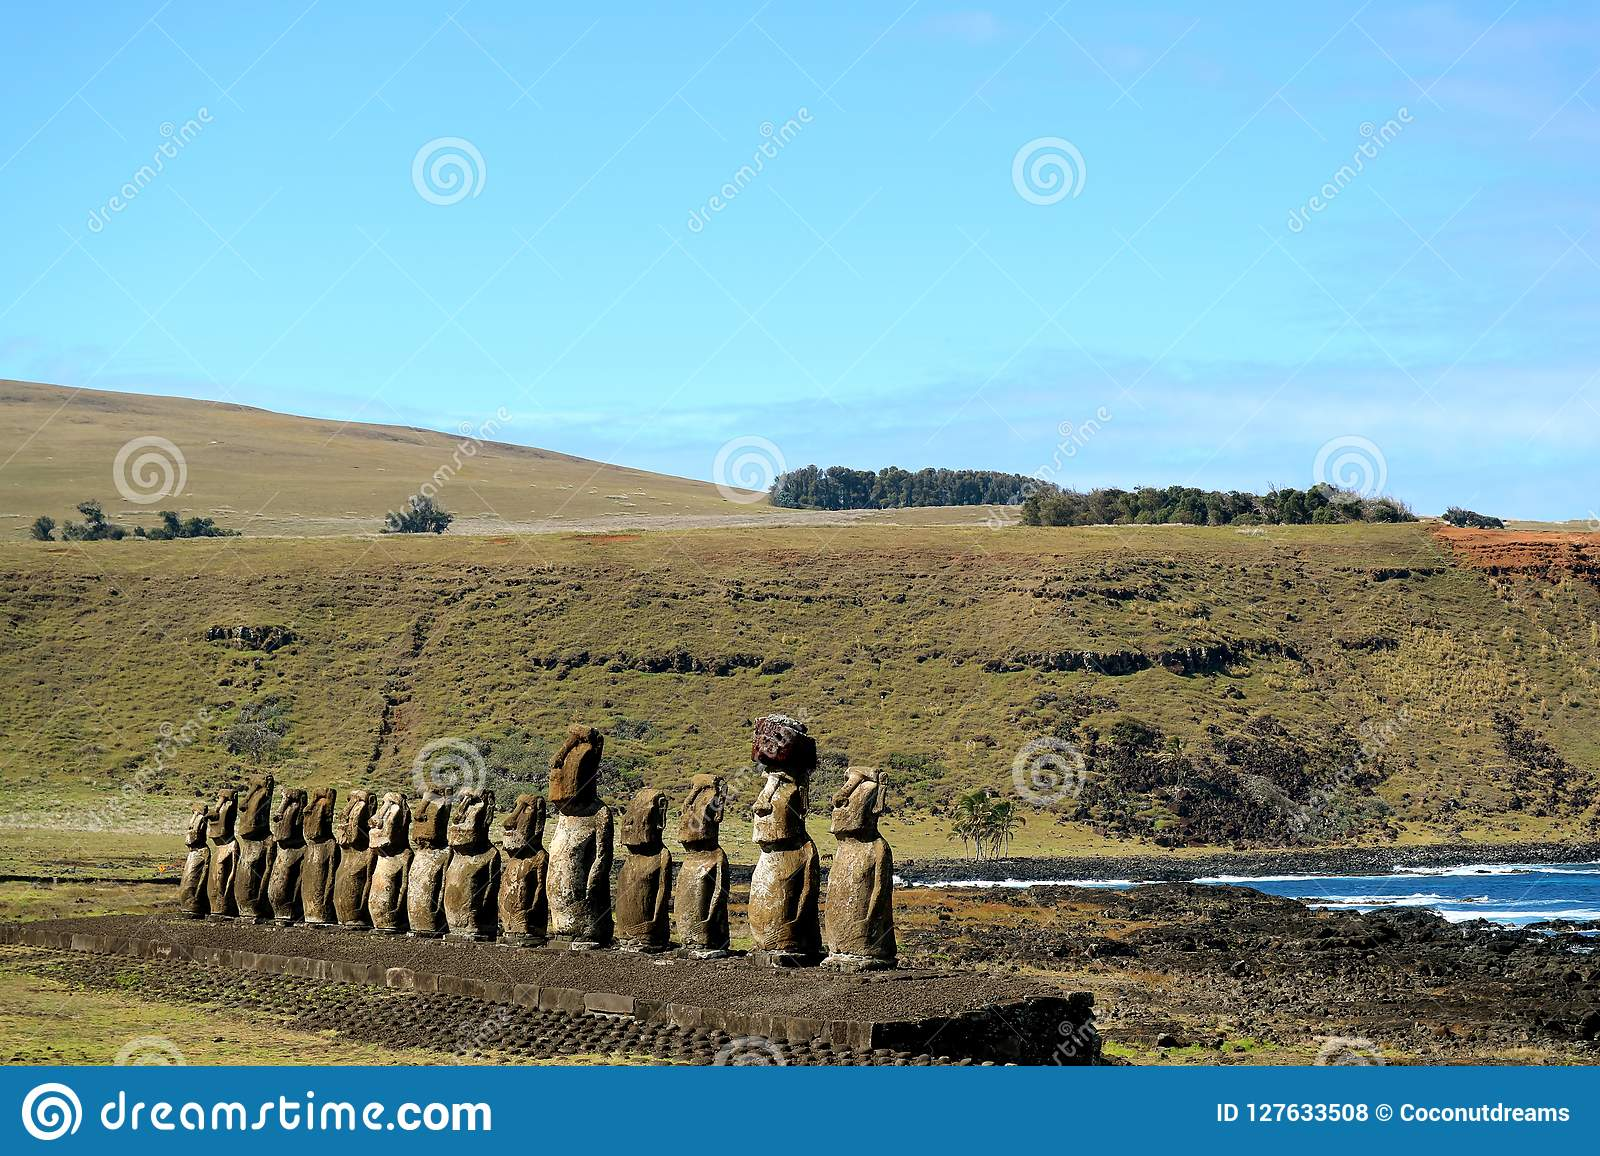 The famous 15 huge Moai statues of Ahu Tongariki archaeological site, UNESCO World Heritage Site on Easter Island, Chile